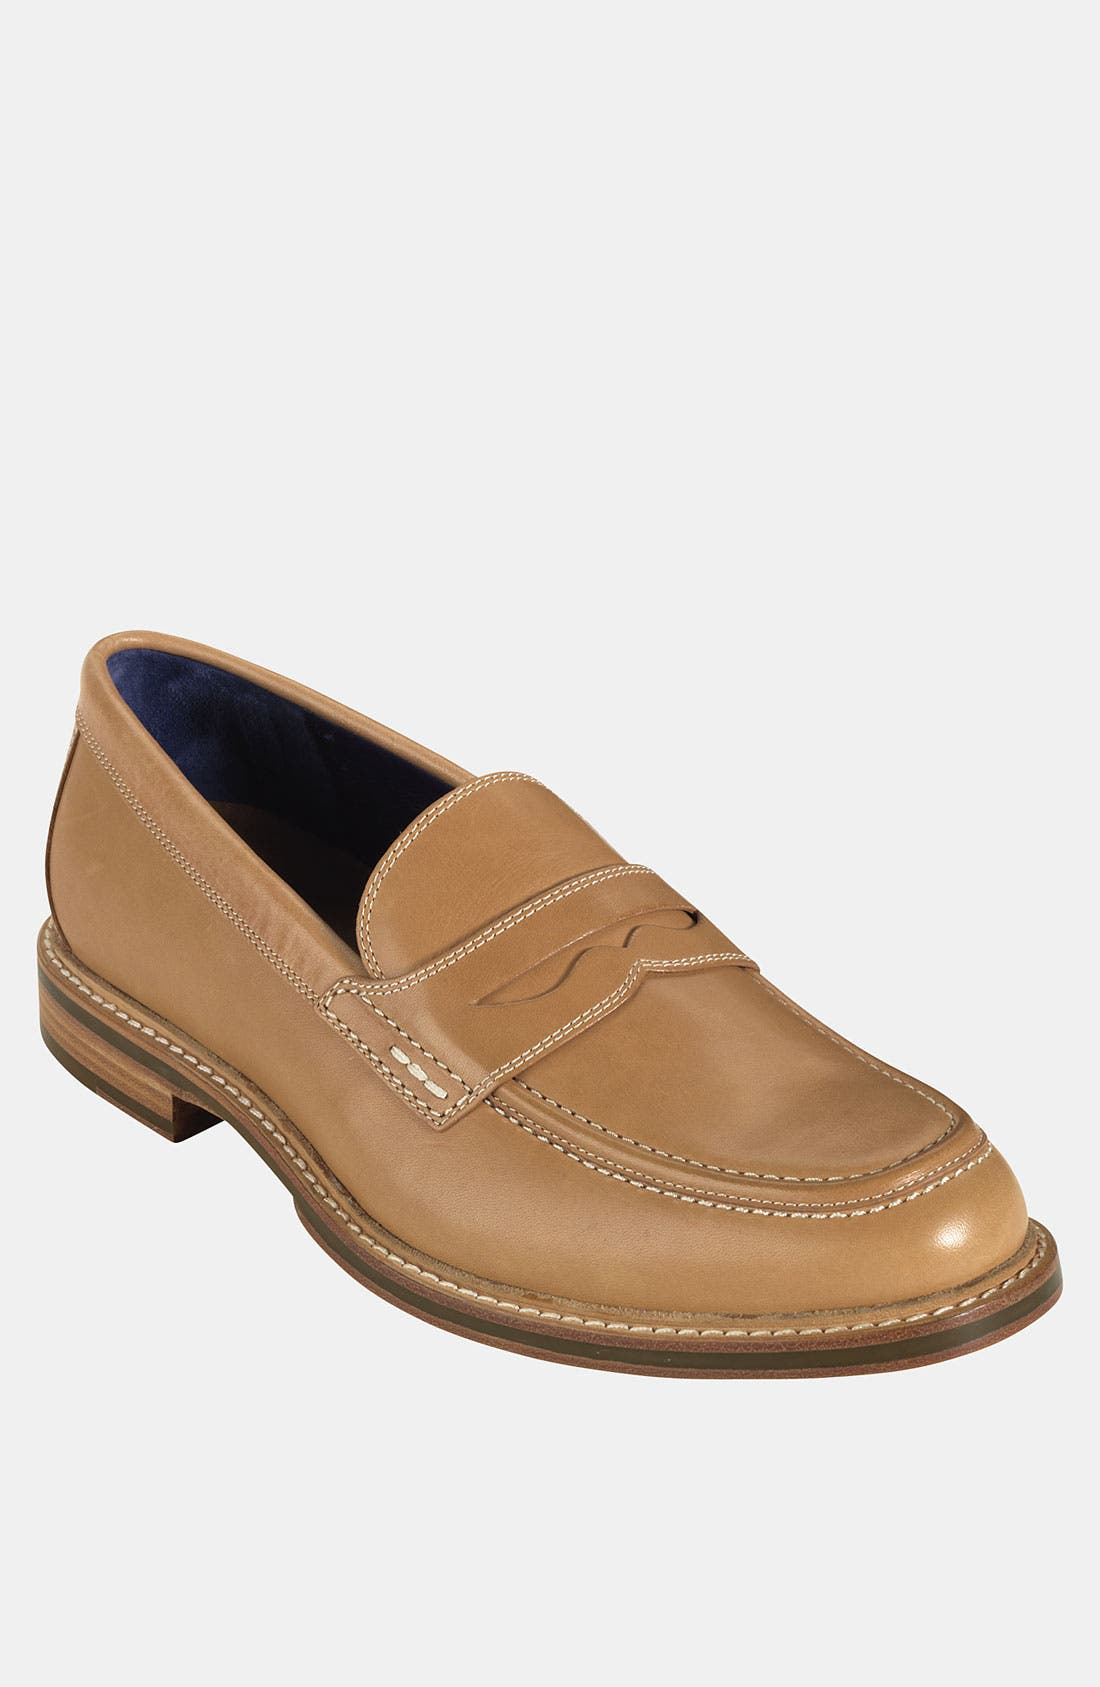 Alternate Image 1 Selected - Cole Haan 'Cooper Square' Loafer   (Men)